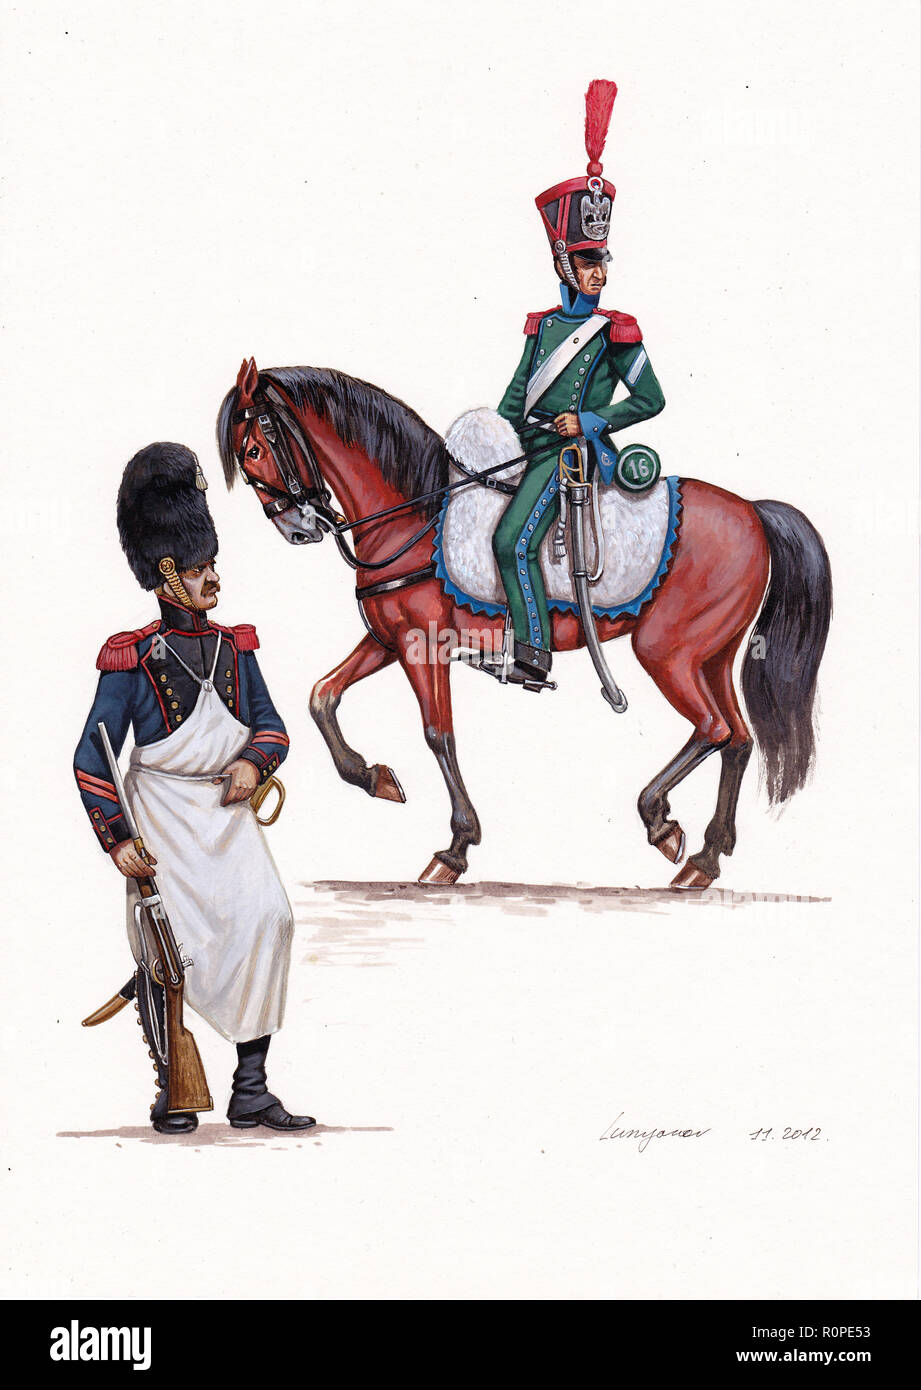 French Caporal and Brigadier, 1812. - Stock Image